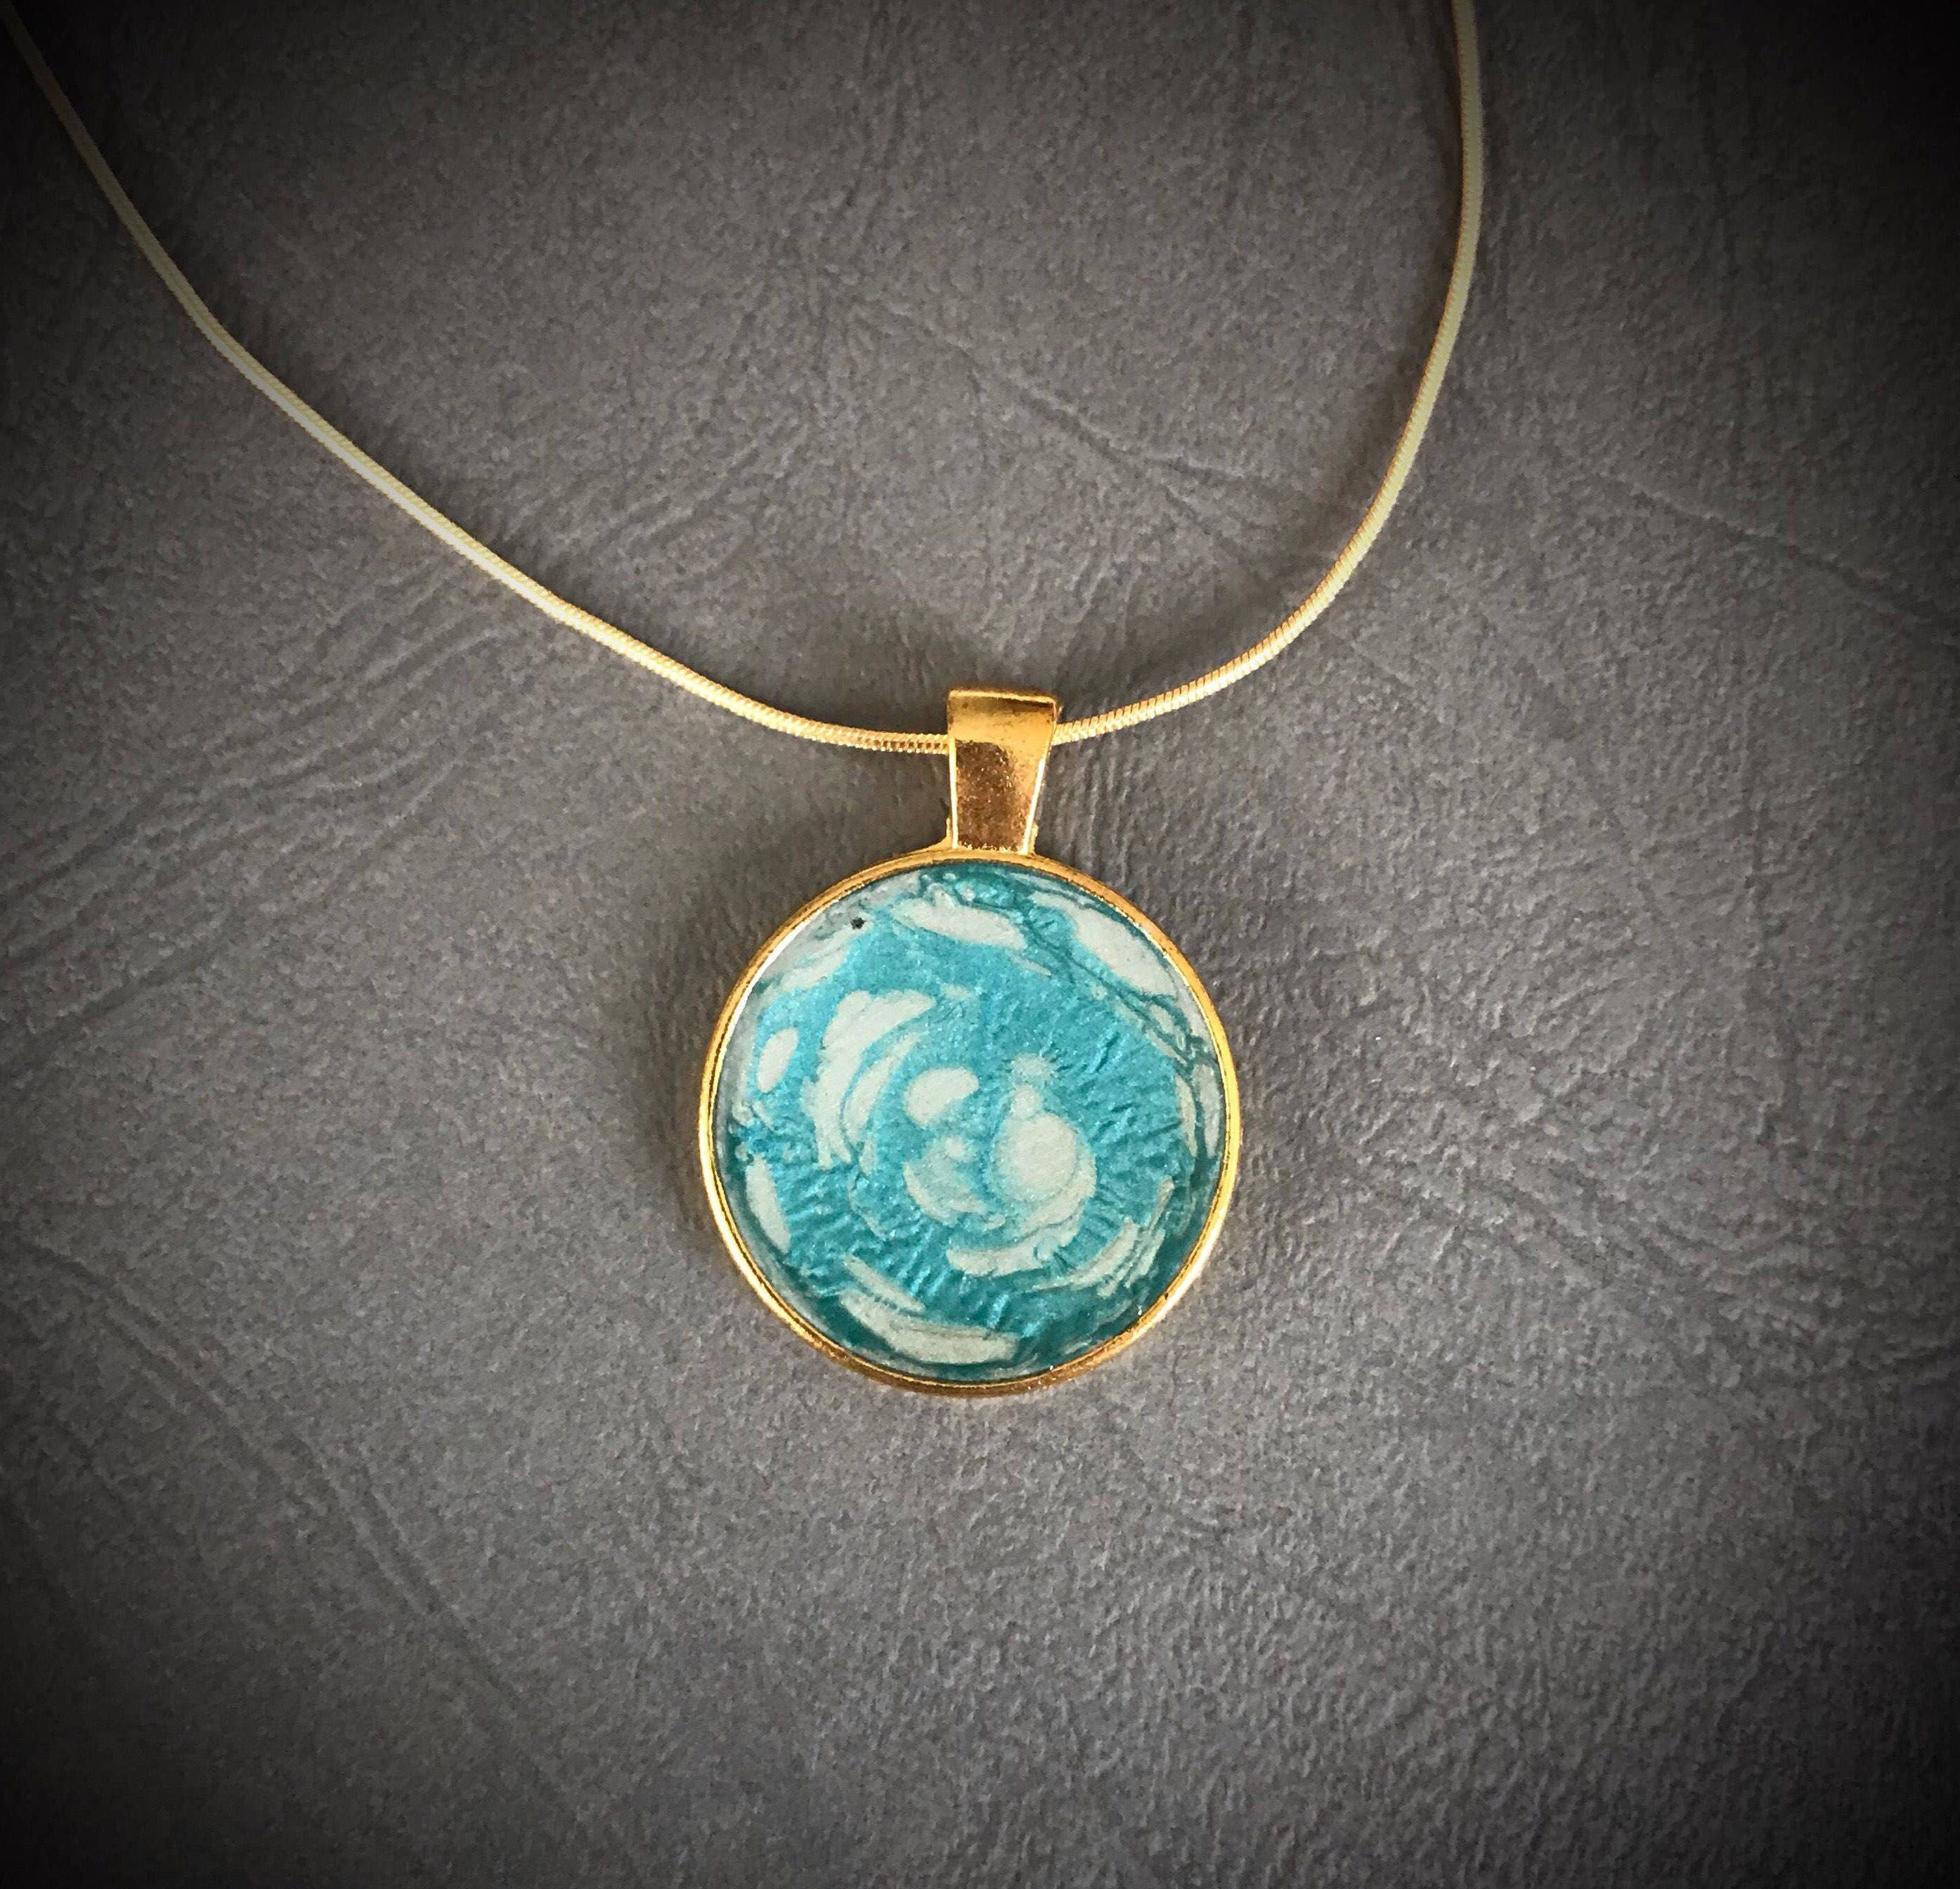 Handmade Jewelry Designs Pendant Necklace Light Blue And